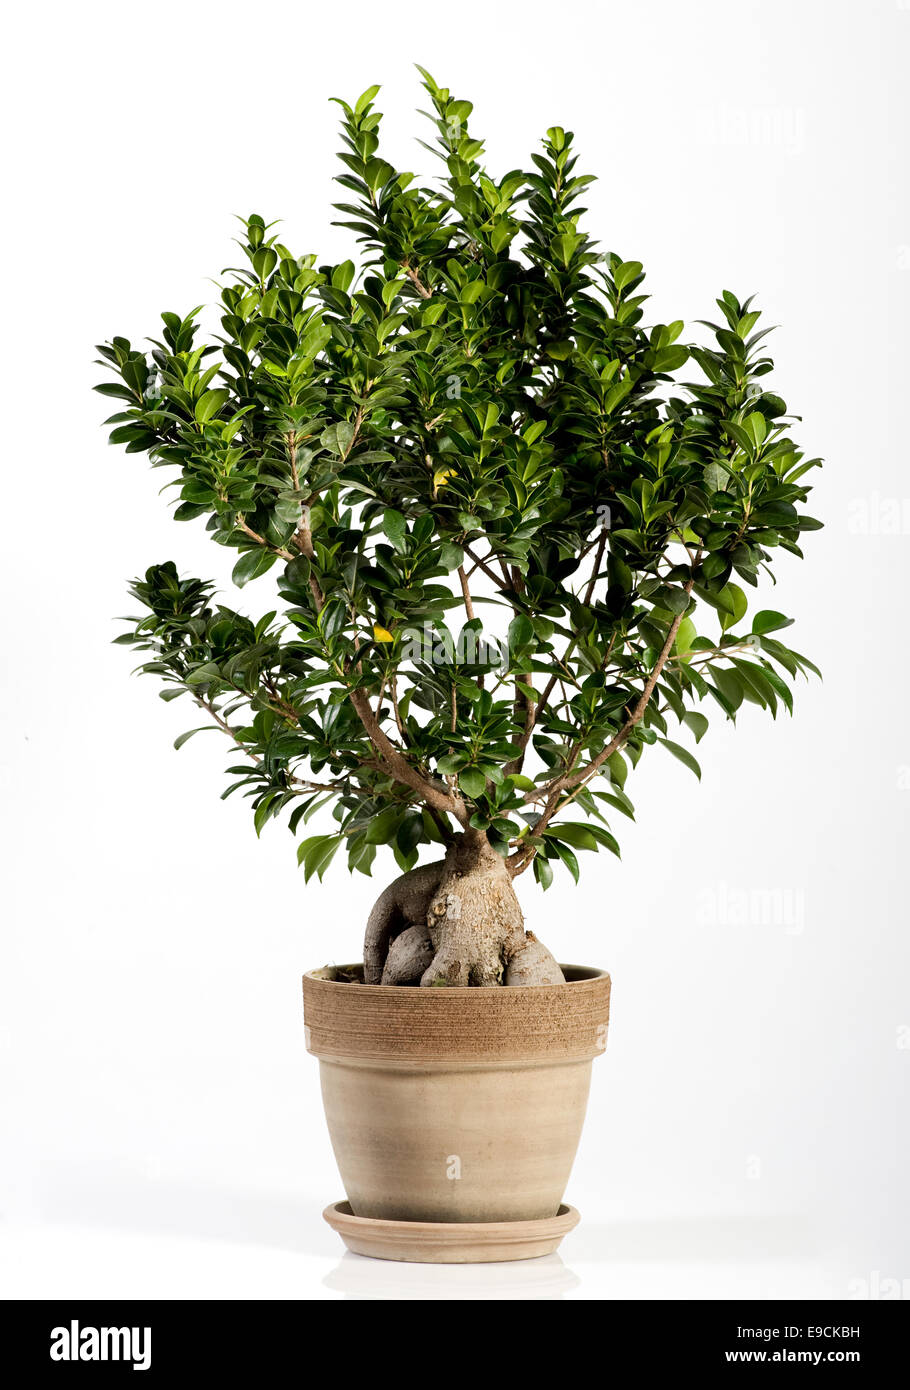 Ficus Bonsai Stock Photos Ficus Bonsai Stock Images Alamy